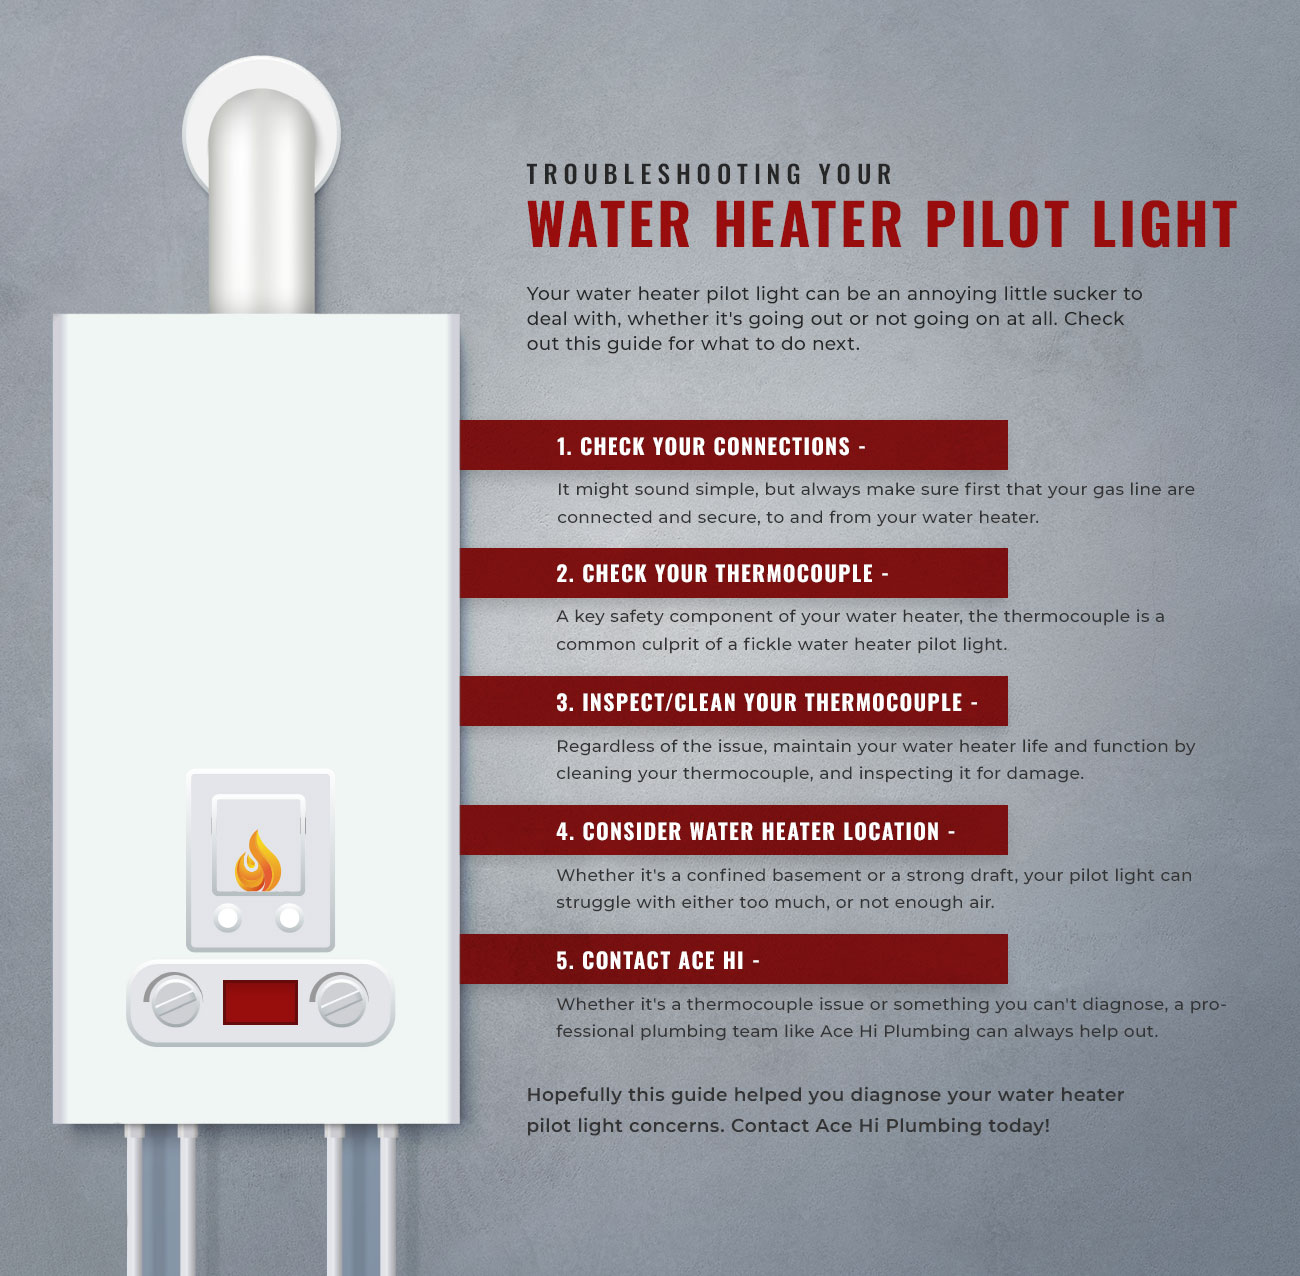 water heater pilot light from going out